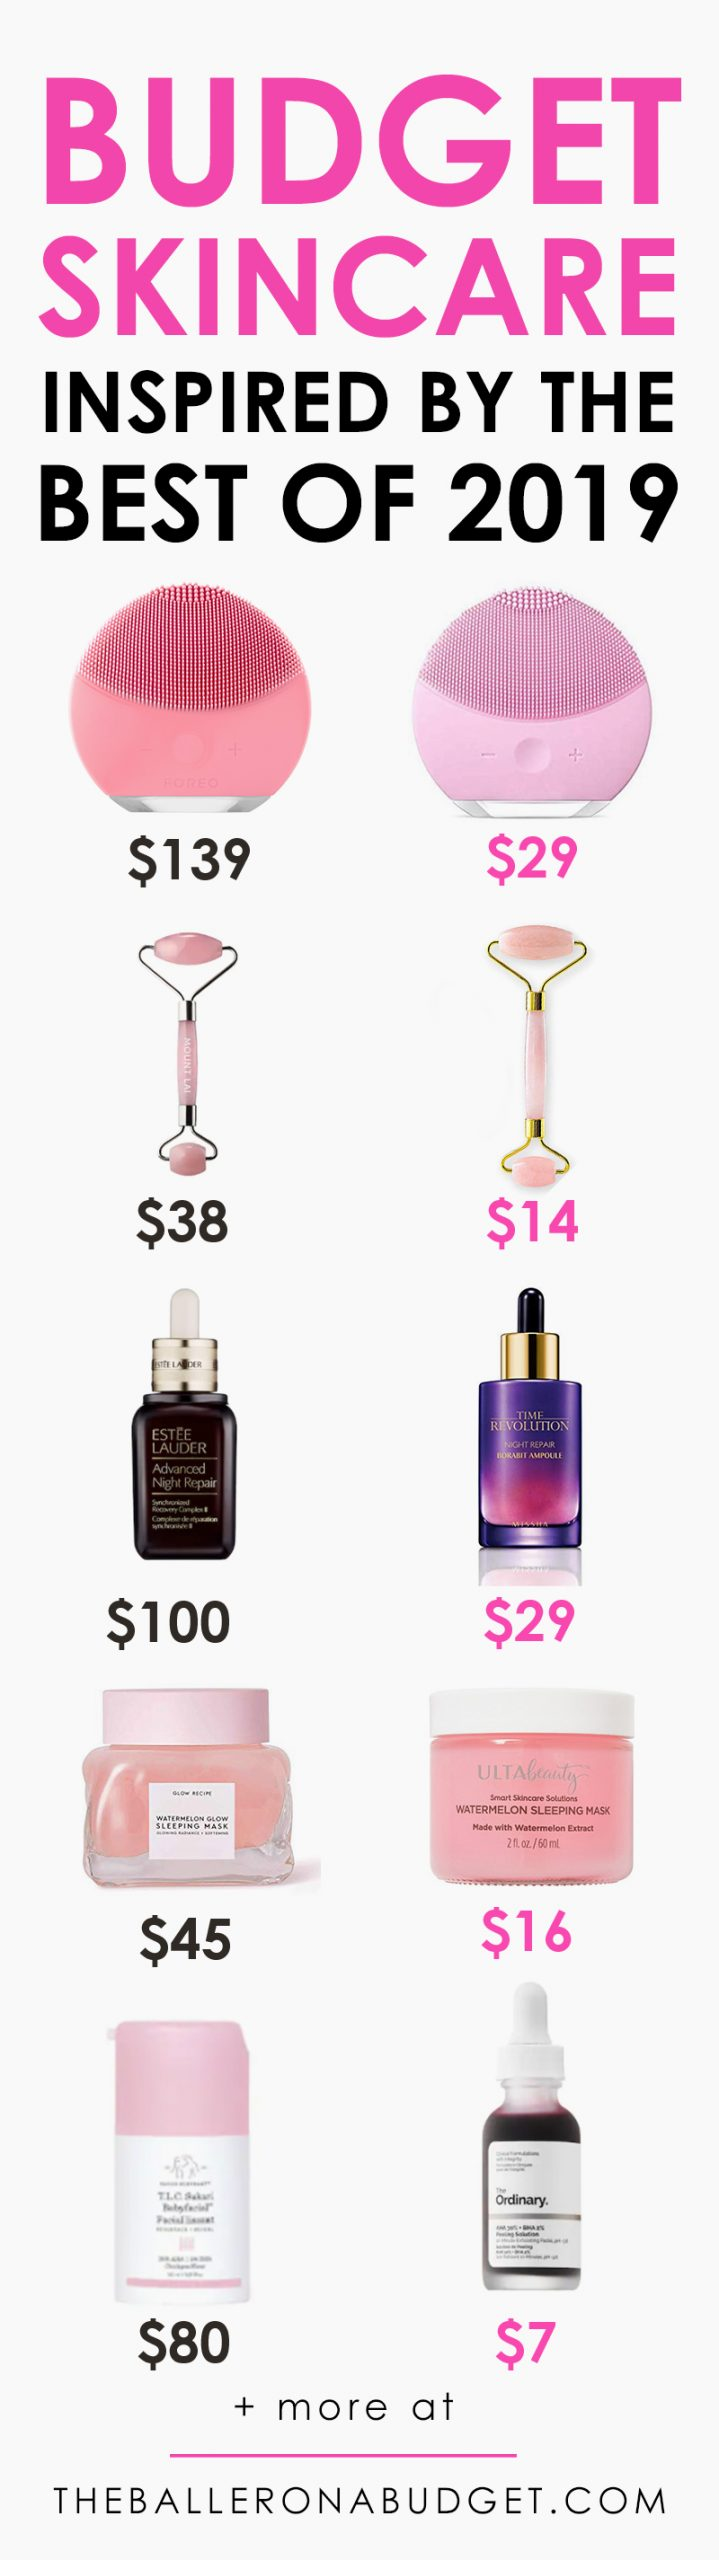 Pinterest graphic of expensive skincare products found at Sephora and more affordable similar products